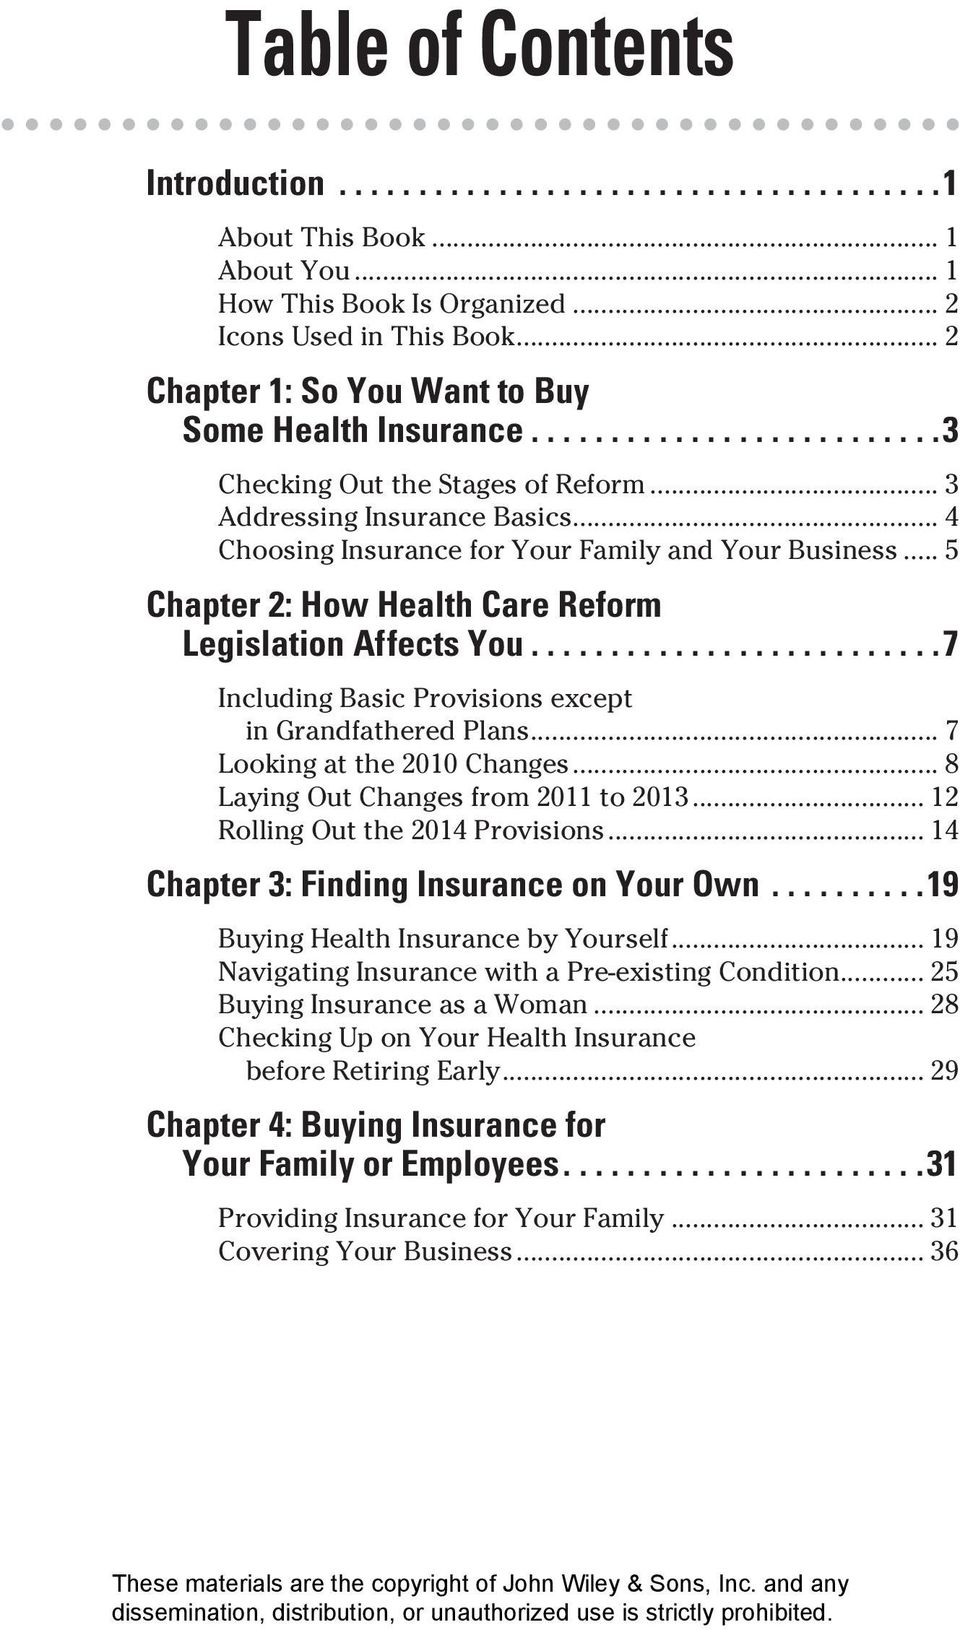 .. 4 Choosing Insurance for Your Family and Your Business... 5 Chapter 2: How Health Care Reform Legislation Affects You..........................7 Including Basic Provisions except in Grandfathered Plans.